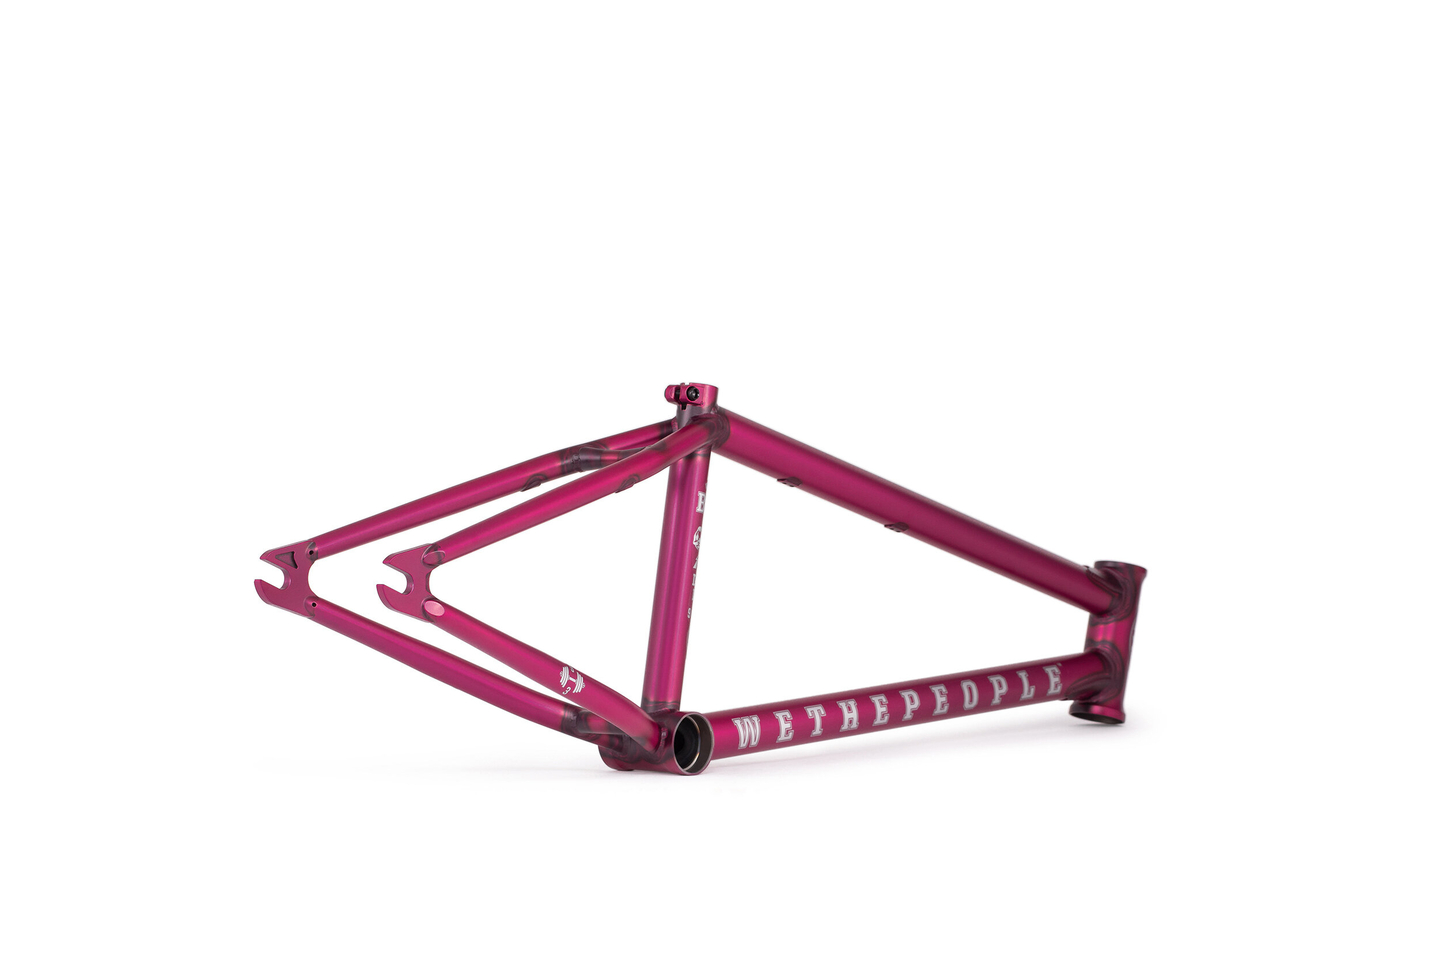 WTP_MY20_Buck_frame_matt_translucent_purple-03